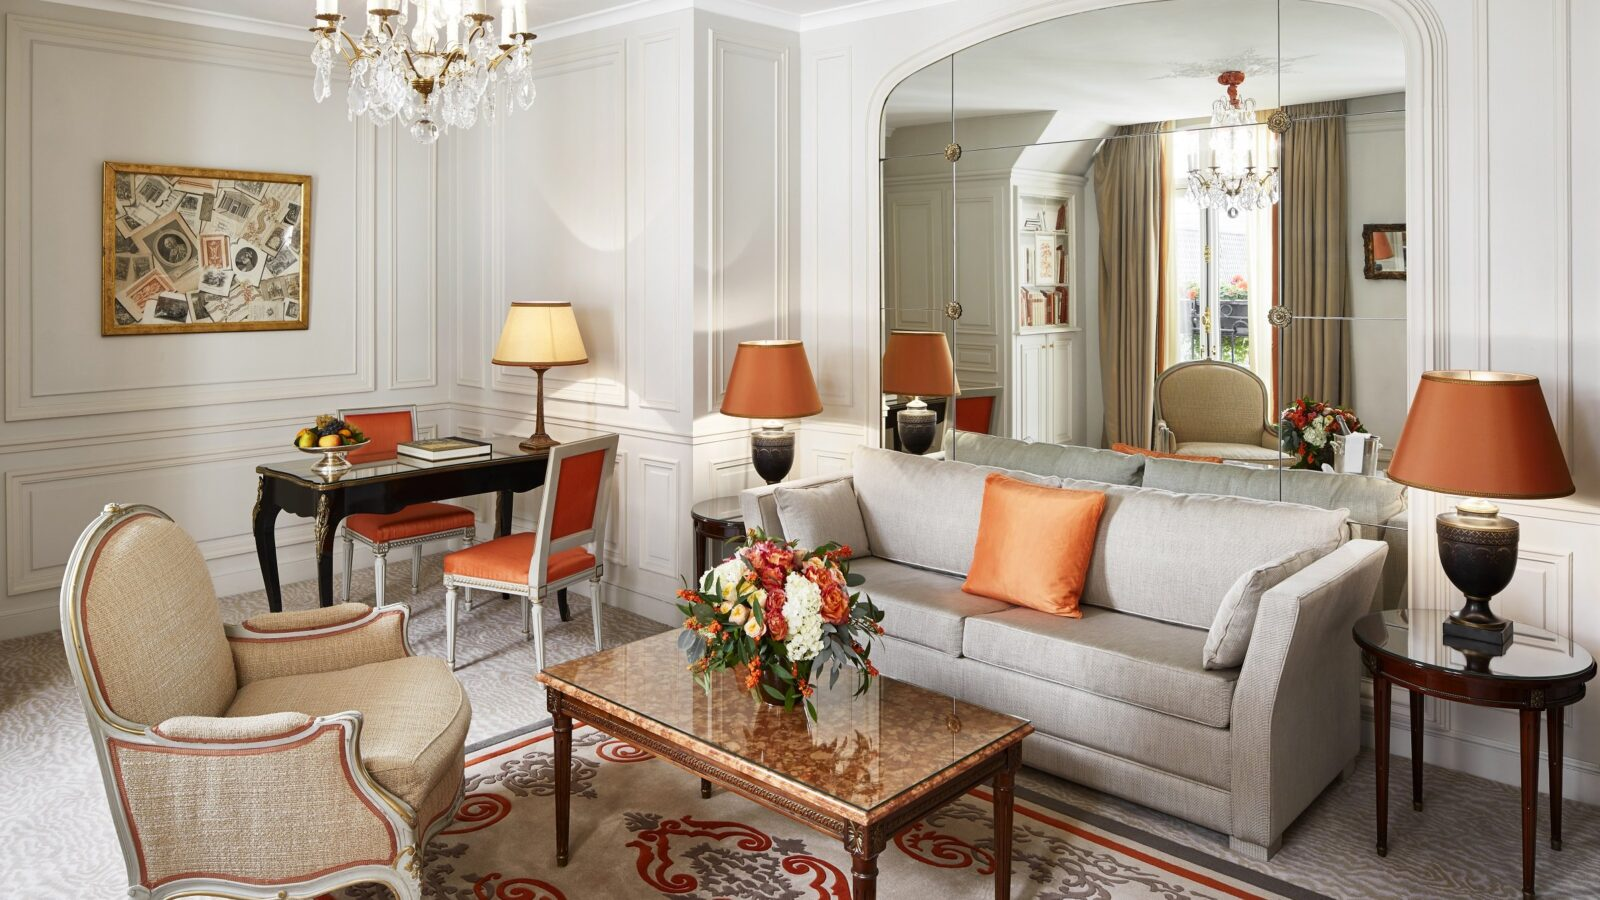 Junior Suite Prestige at Hôtel Plaza Athénée, Paris